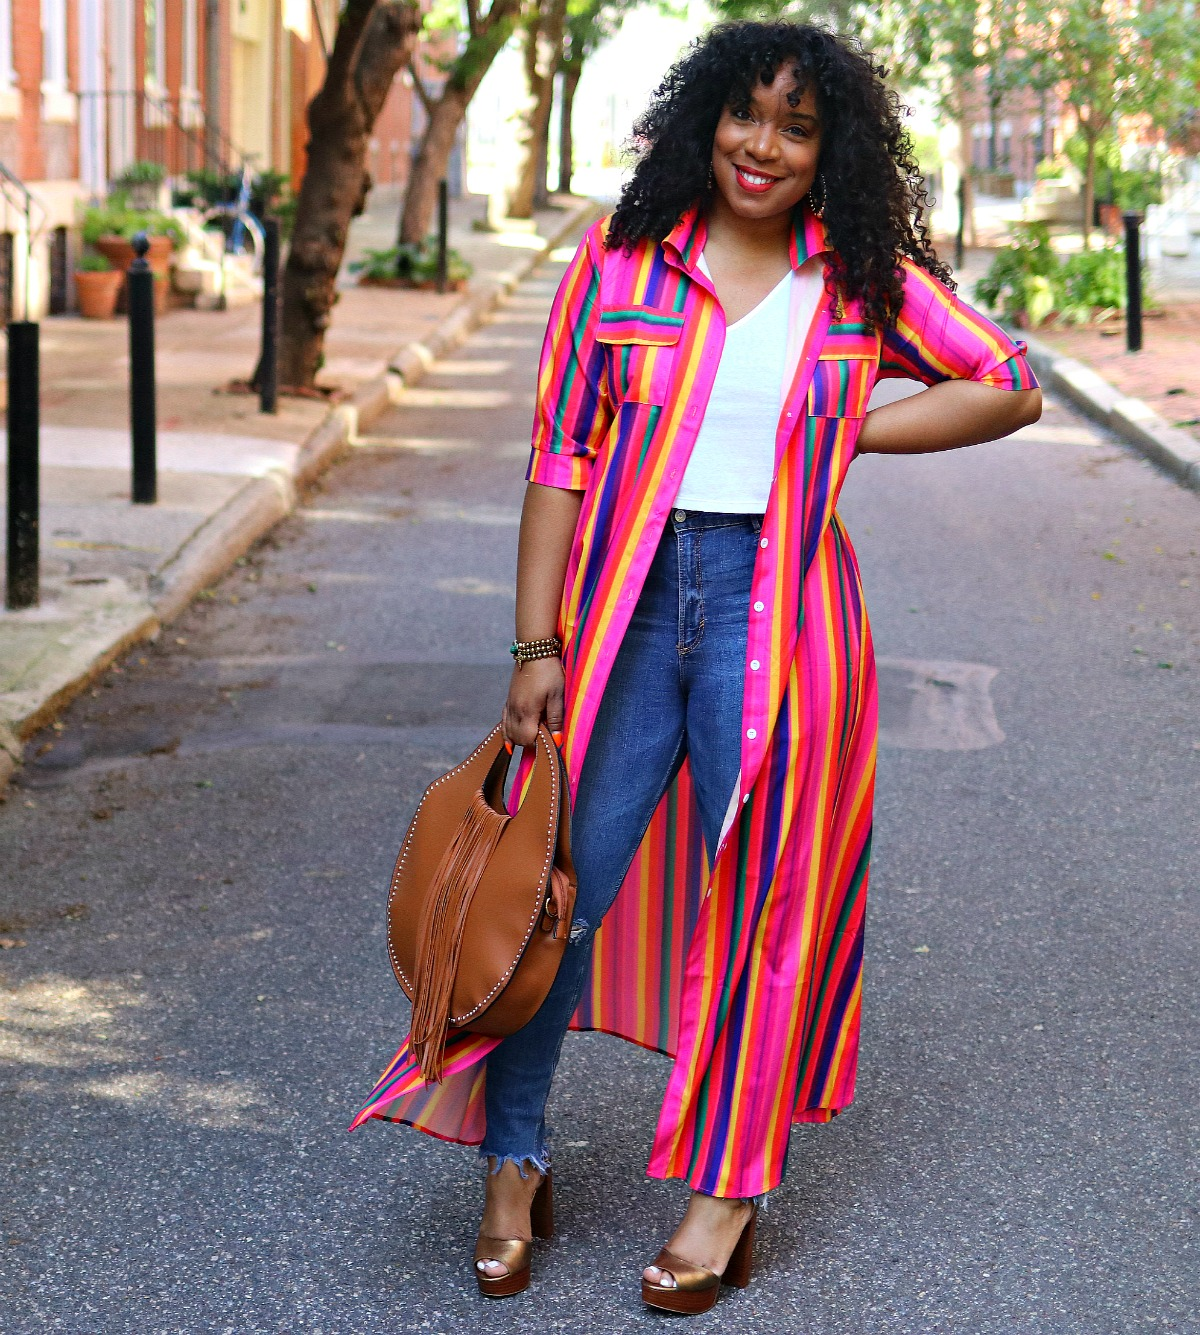 Style & Poise: Rainbow kimono, Studded Fringe Purse, Platform Sandals